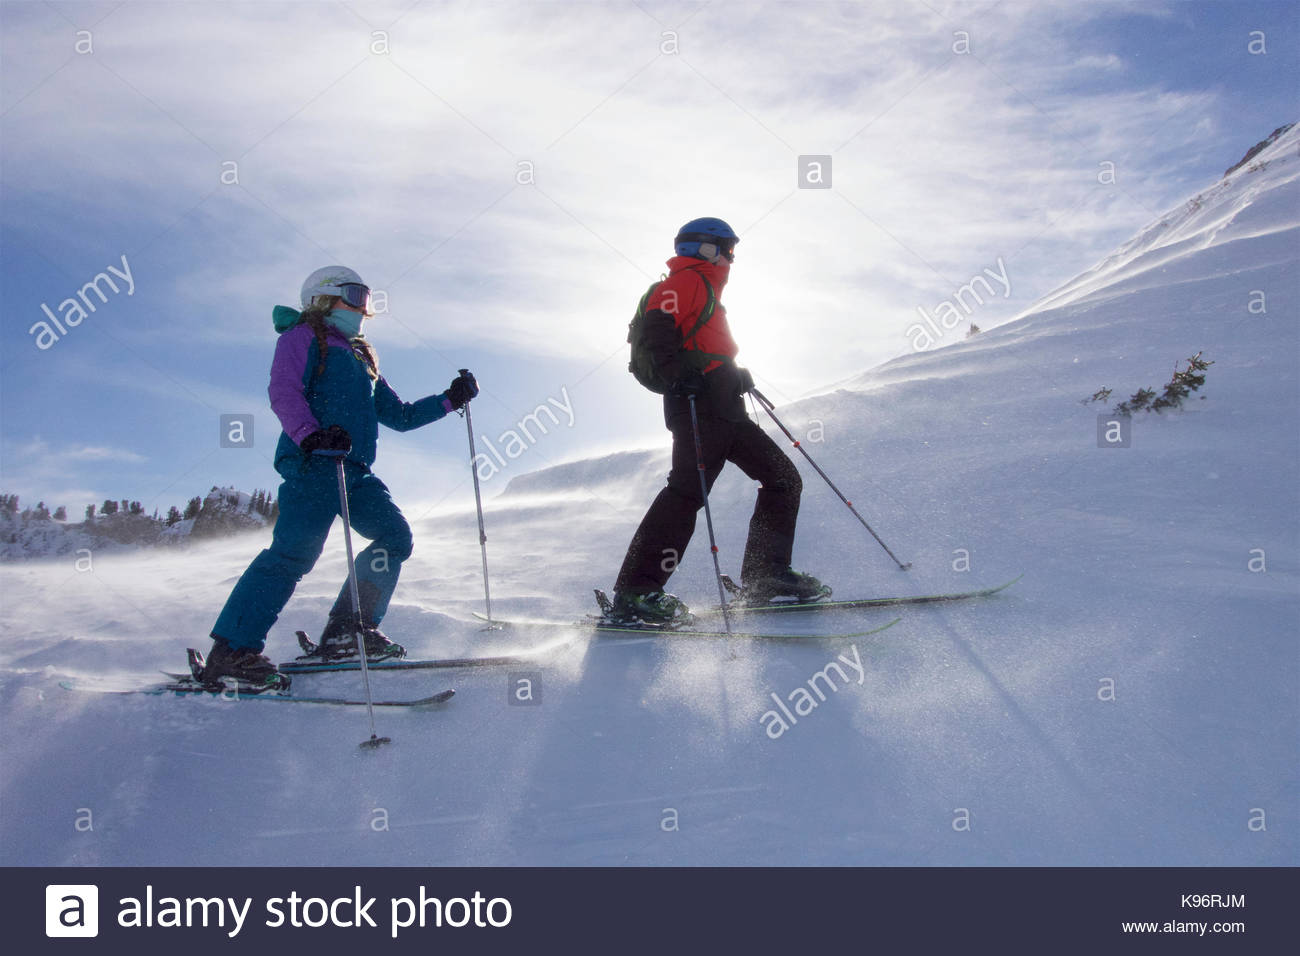 Teen siblings skiing across the top of a mountain on a sunny day. - Stock Image